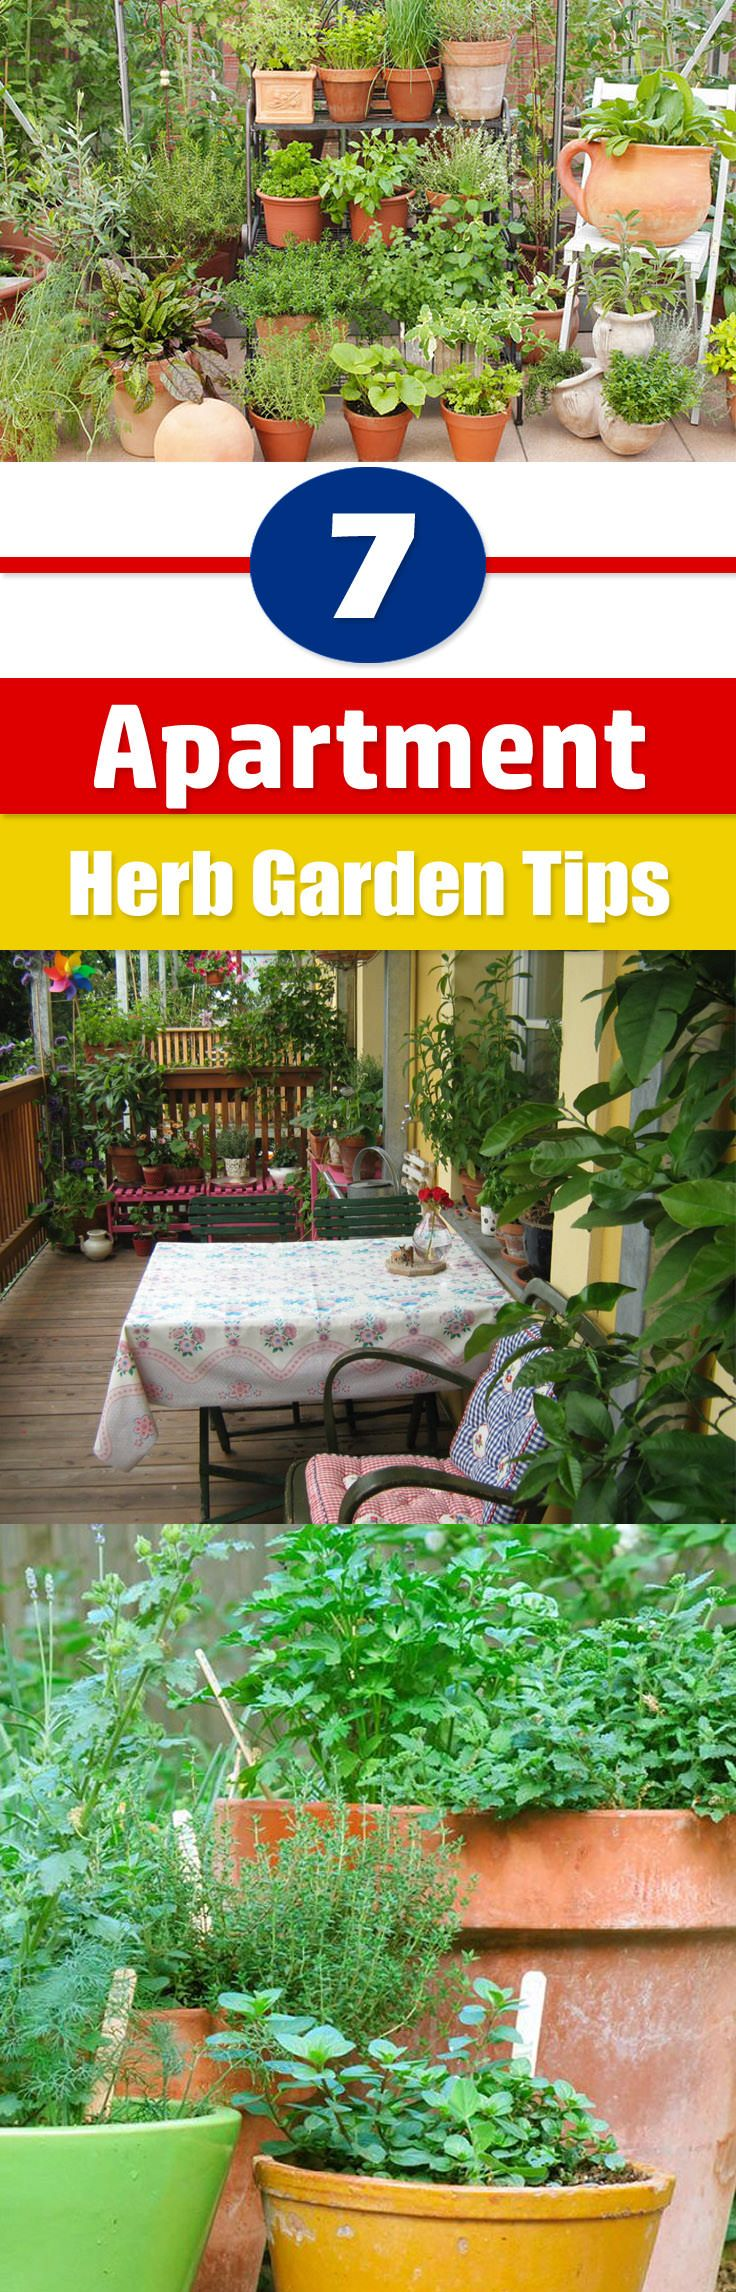 7 tips for a fresh herb garden in your city apartment apartment herb gardensapartment gardeningbalcony gardeningvegetable